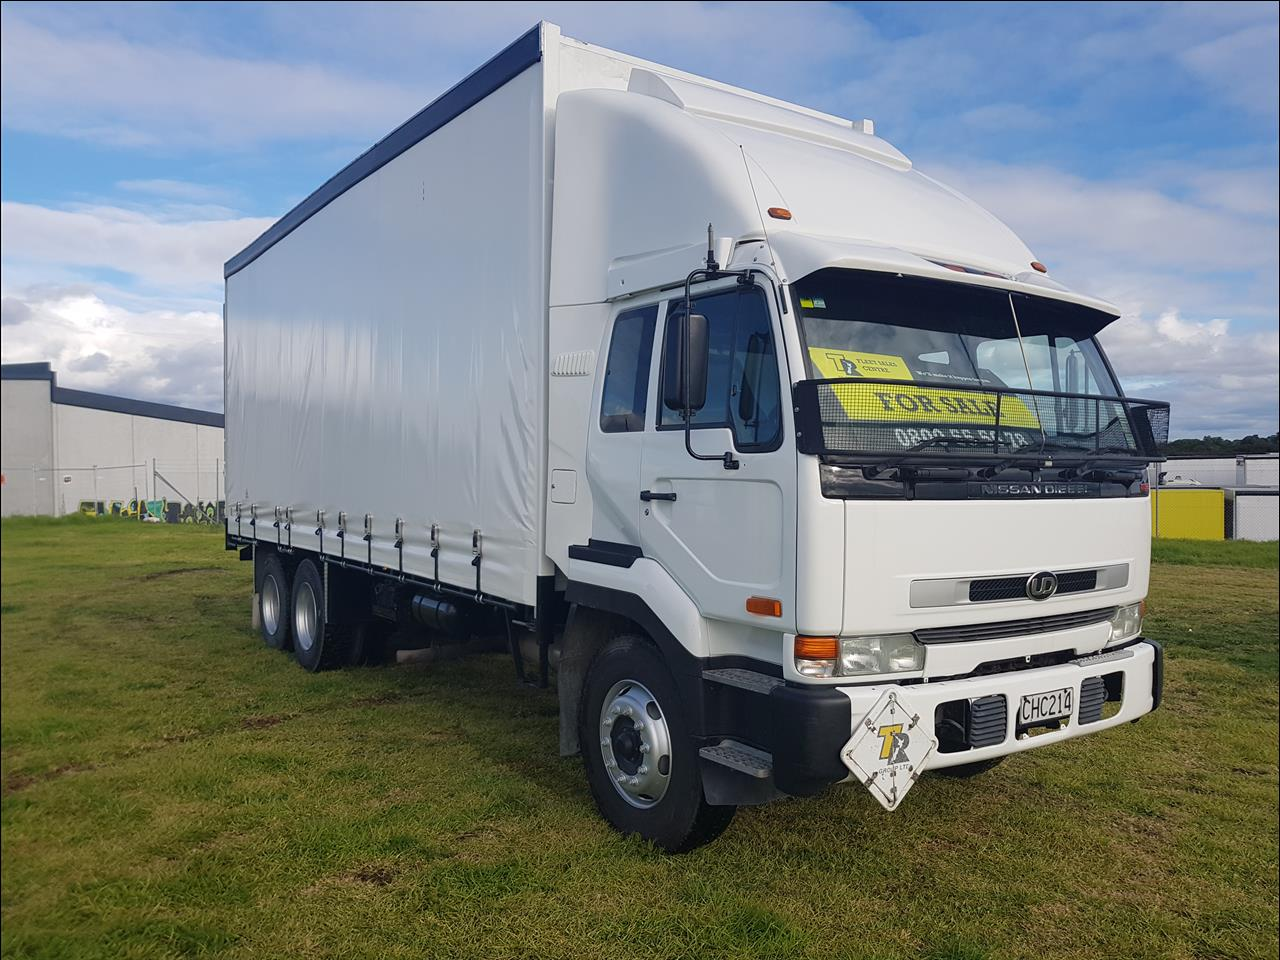 Image - 2004 Nissan Diesel CW330 - 6x4 Curtainside Tail Lift